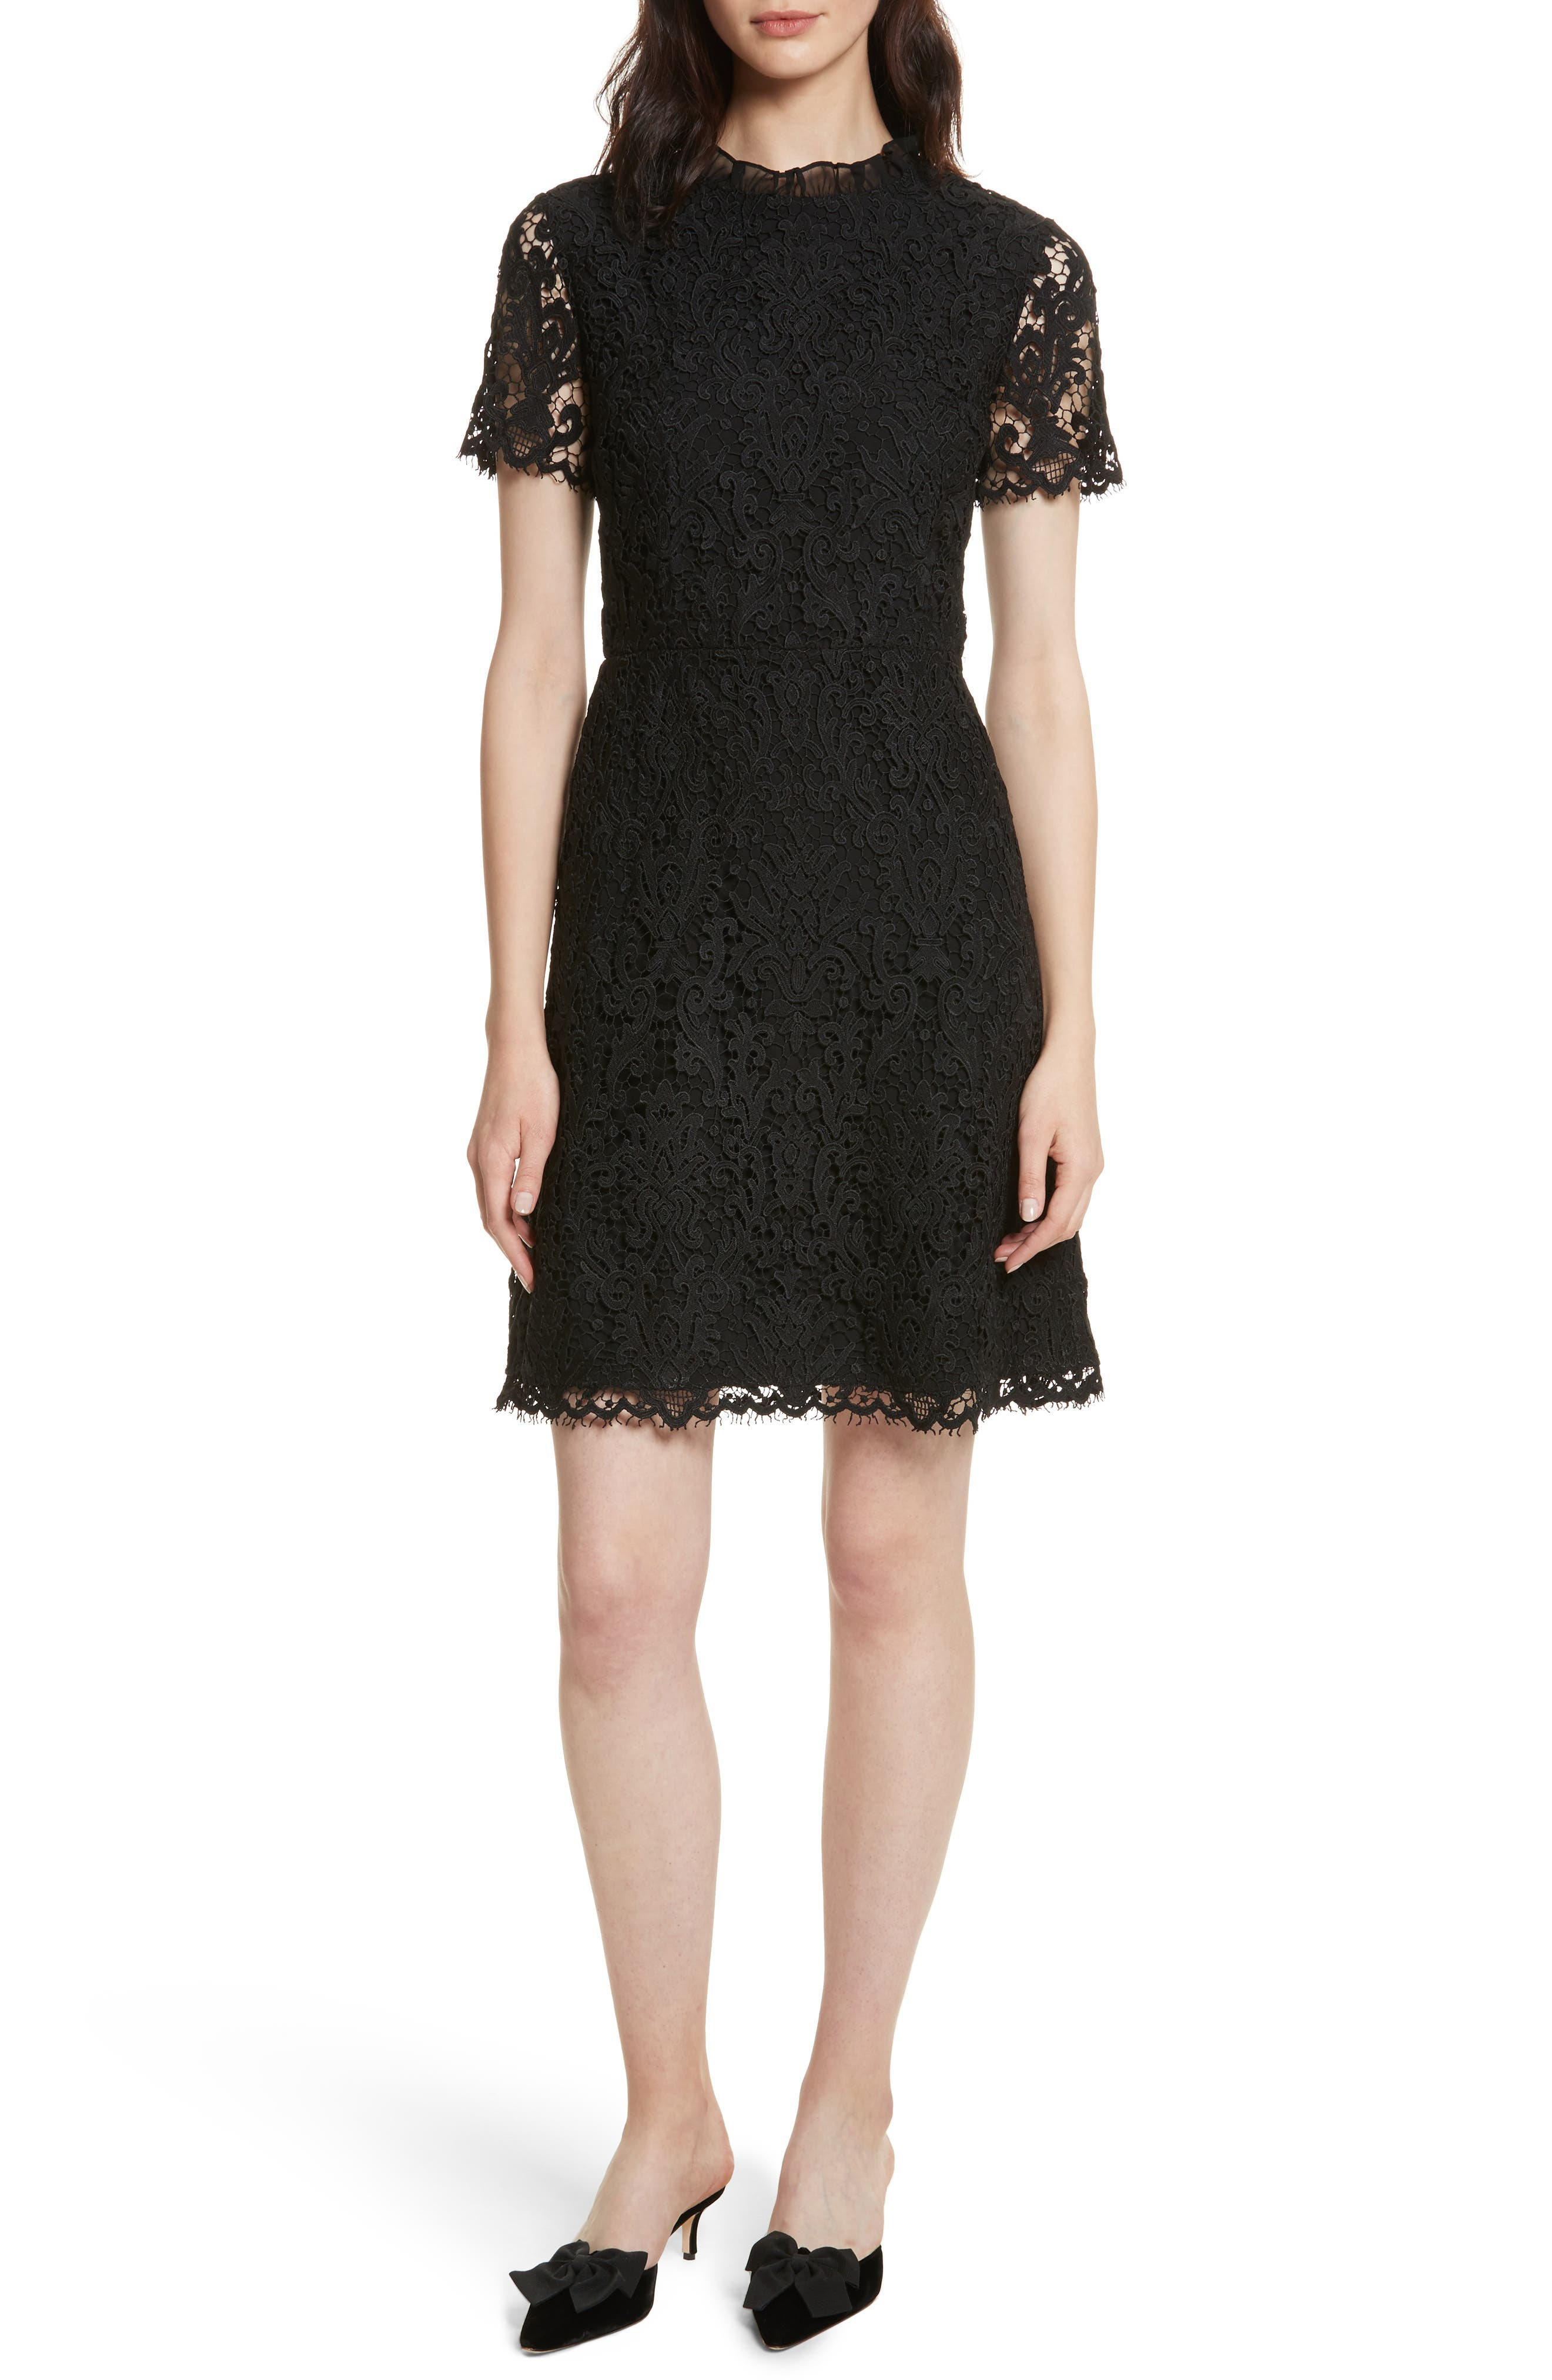 tapestry lace dress,                         Main,                         color, Black